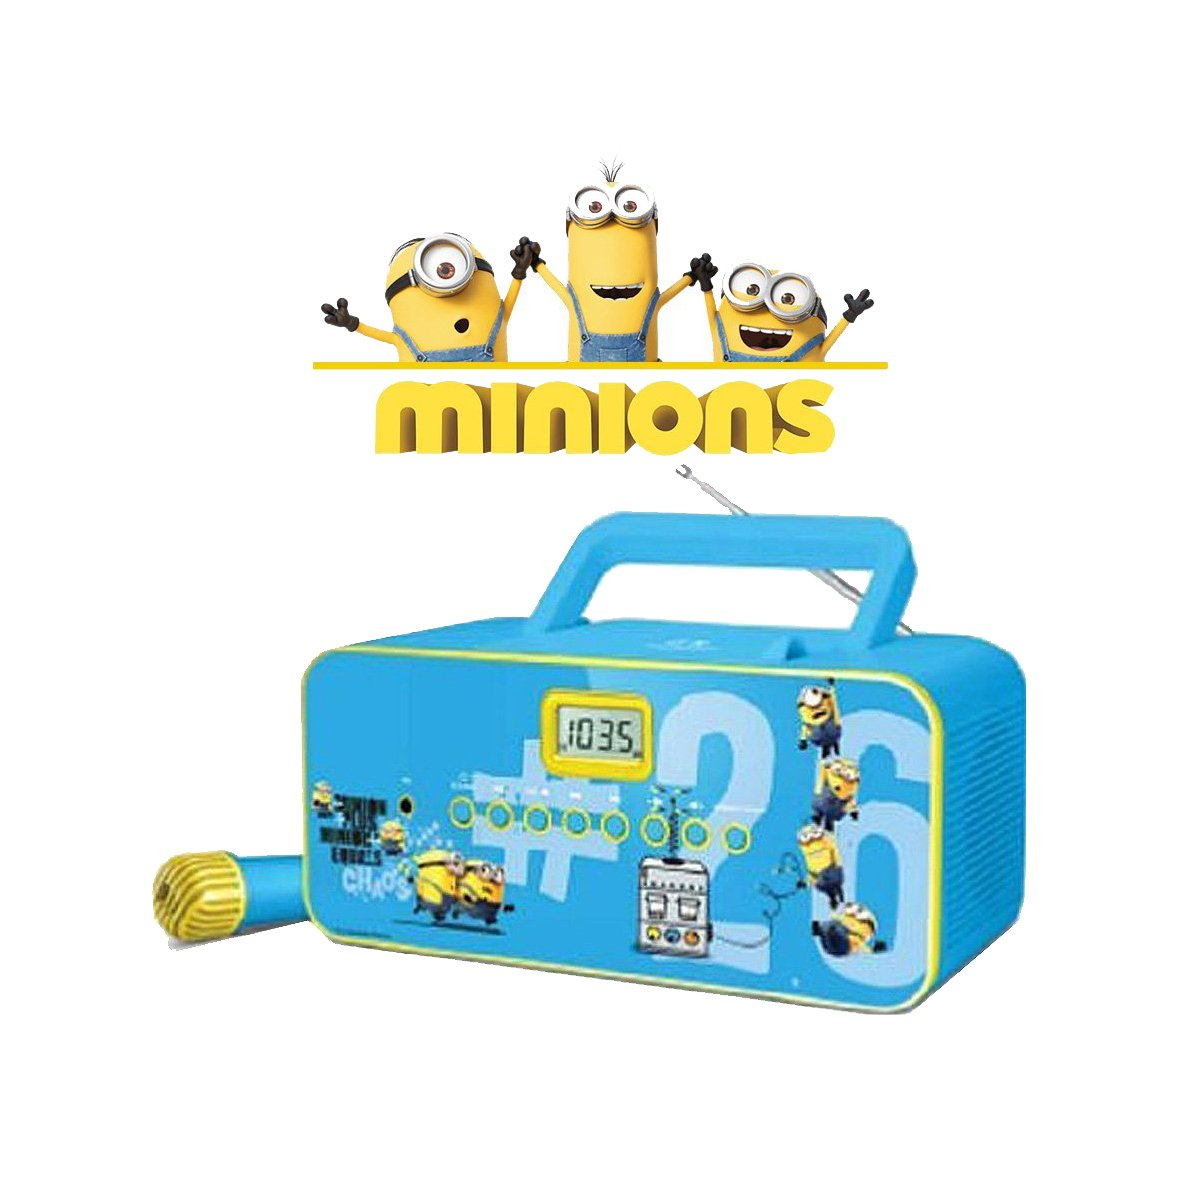 Minions Portable CD Player Sing Along Radio RD-3353M (Certified Refurbished)